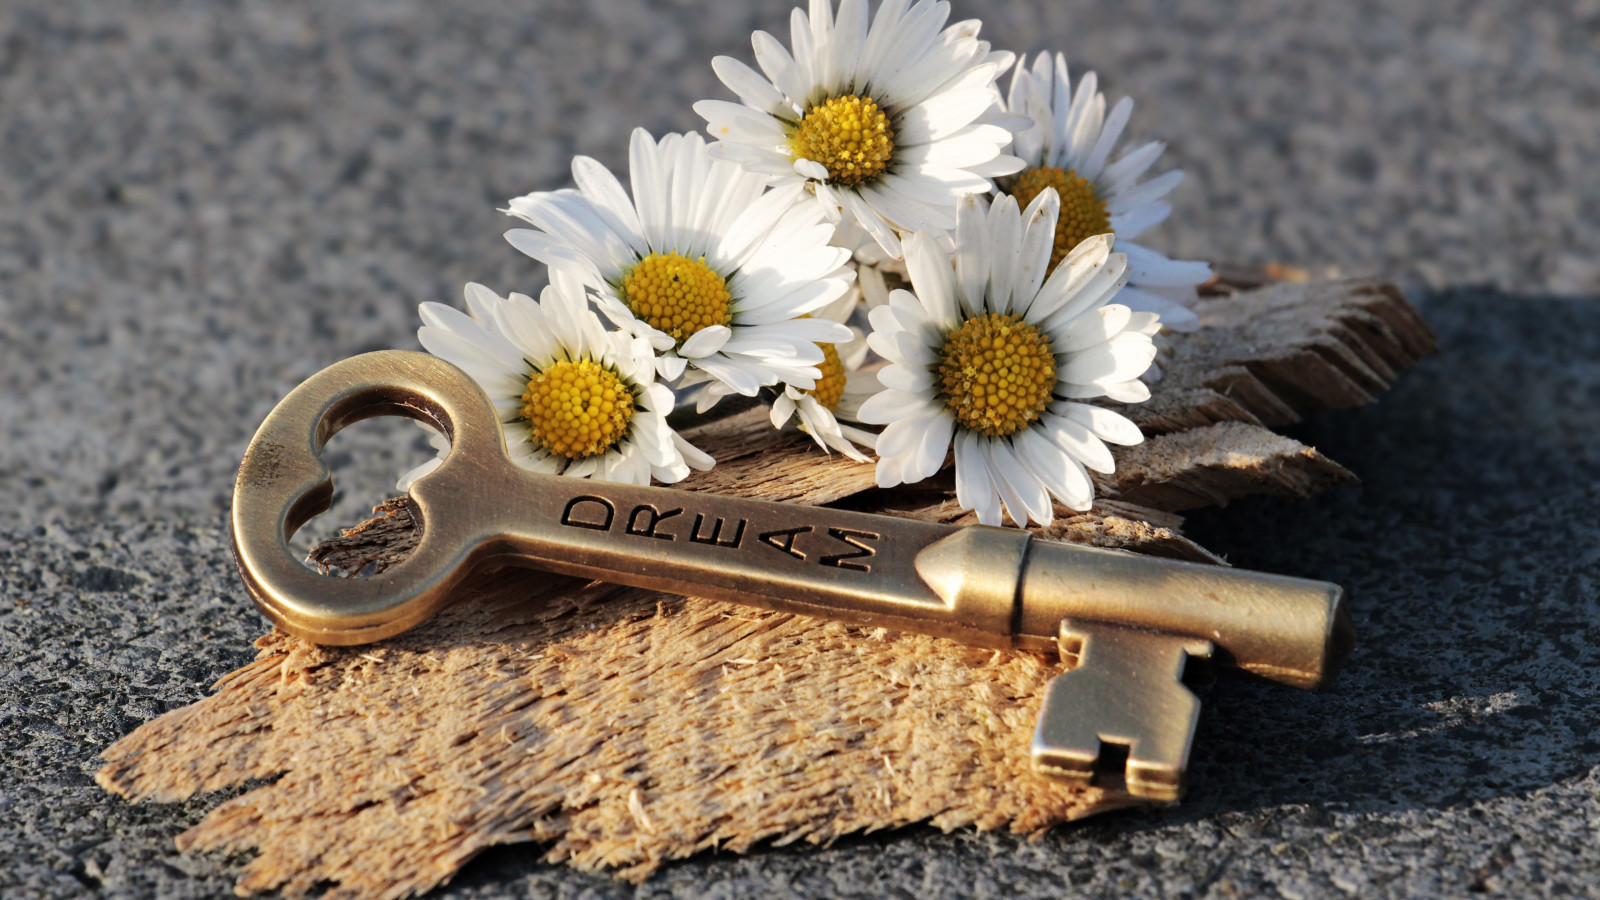 The dreams key and daisy flowers wallpaper 1600x900